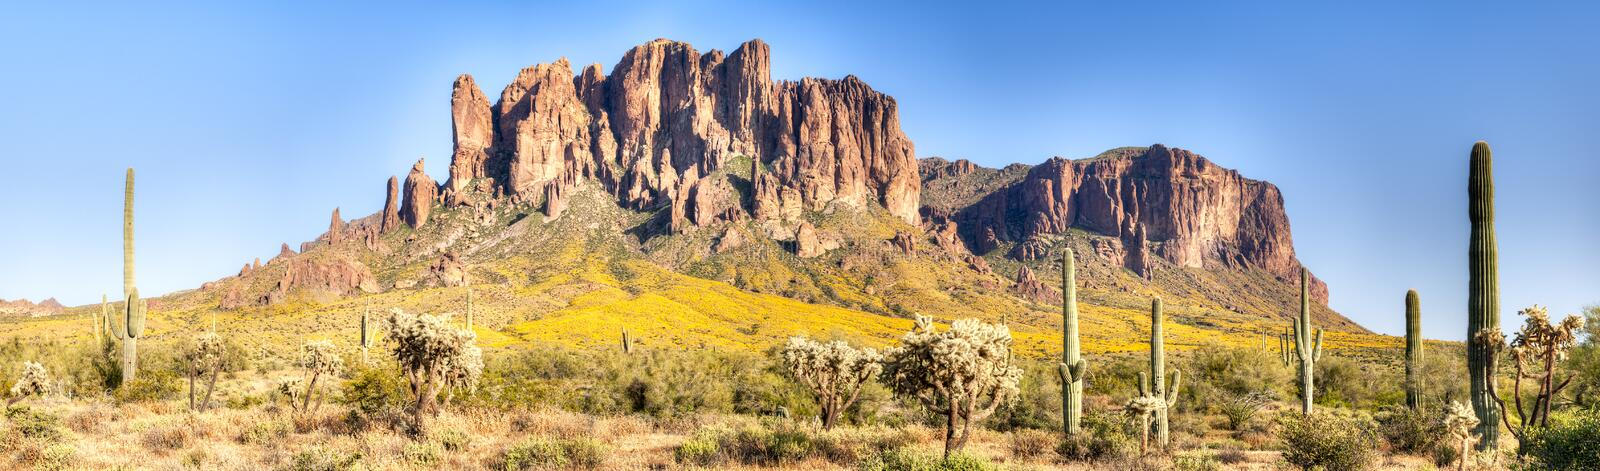 Superstition Mountains. Blooming brittlebush in Superstition Wilderness stock photos